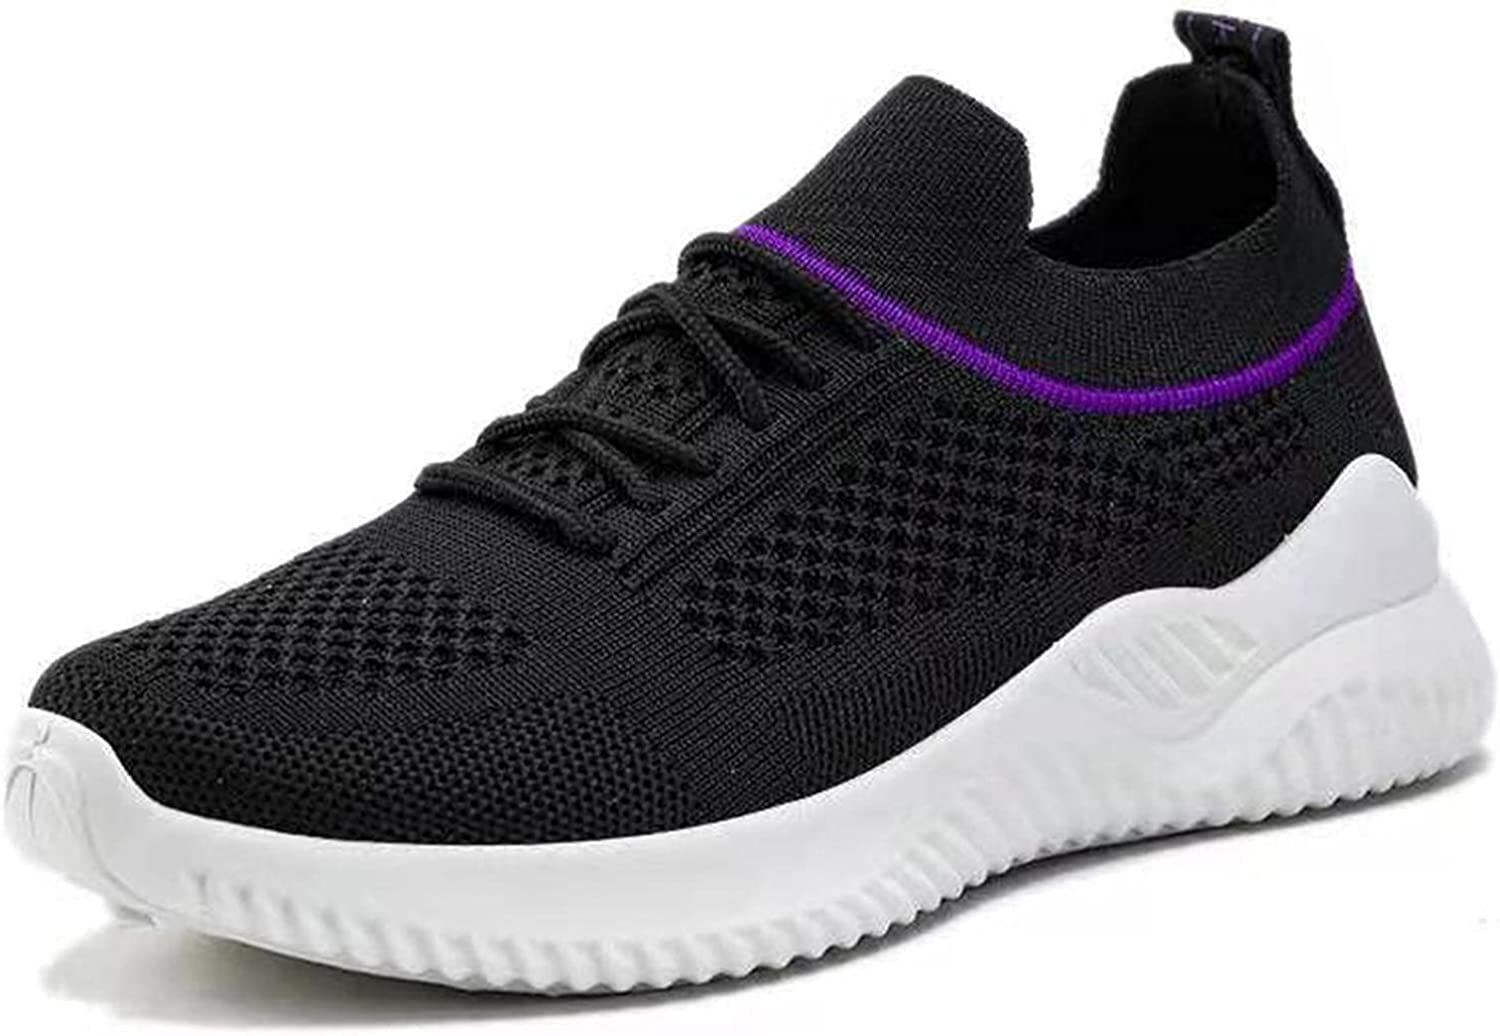 Hbeylia Womens Walking Running Shoes Slip On Sneakers Fashion Casual Lightweight Memory Foam Anti Skids Athletic Hiking Tennis Sports Shoes Breathable Mesh Driving Trainers Work Shoes For Ladies